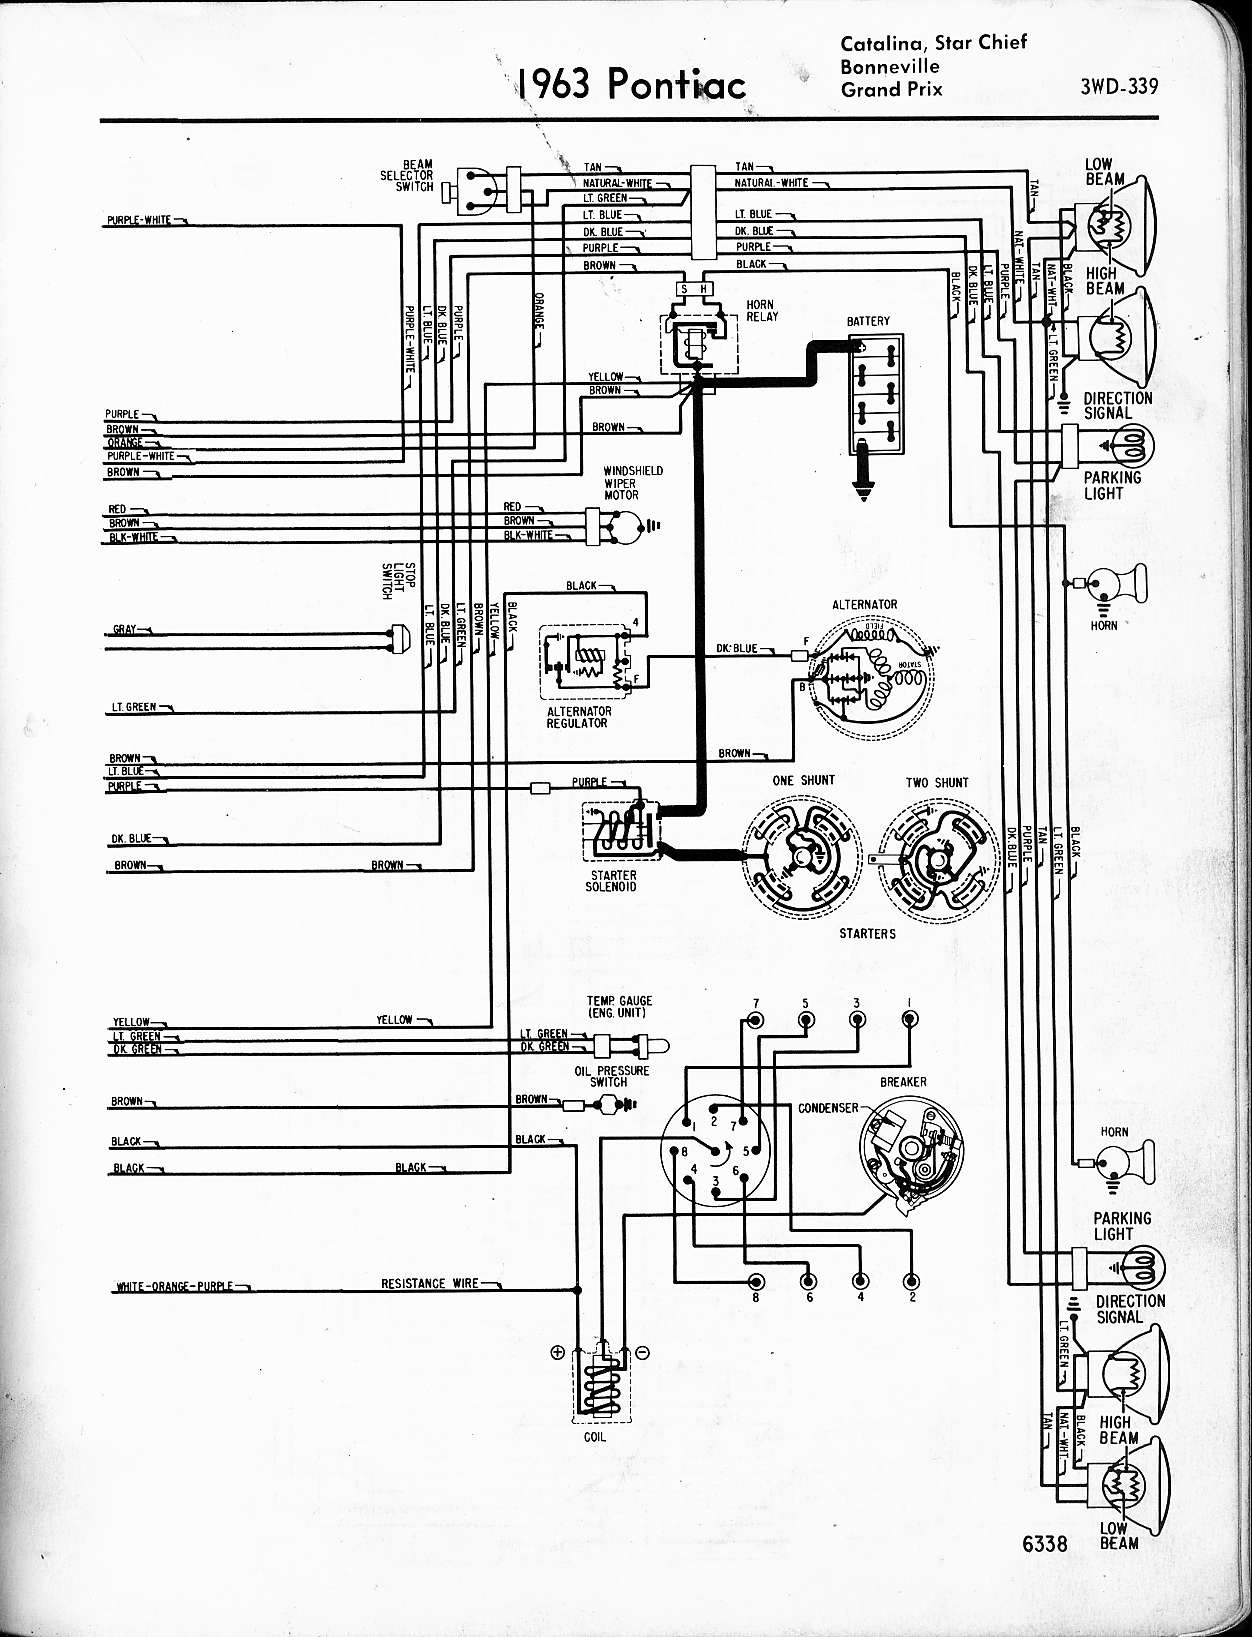 Pontiac Bonneville Wiring Diagram : 33 Wiring Diagram